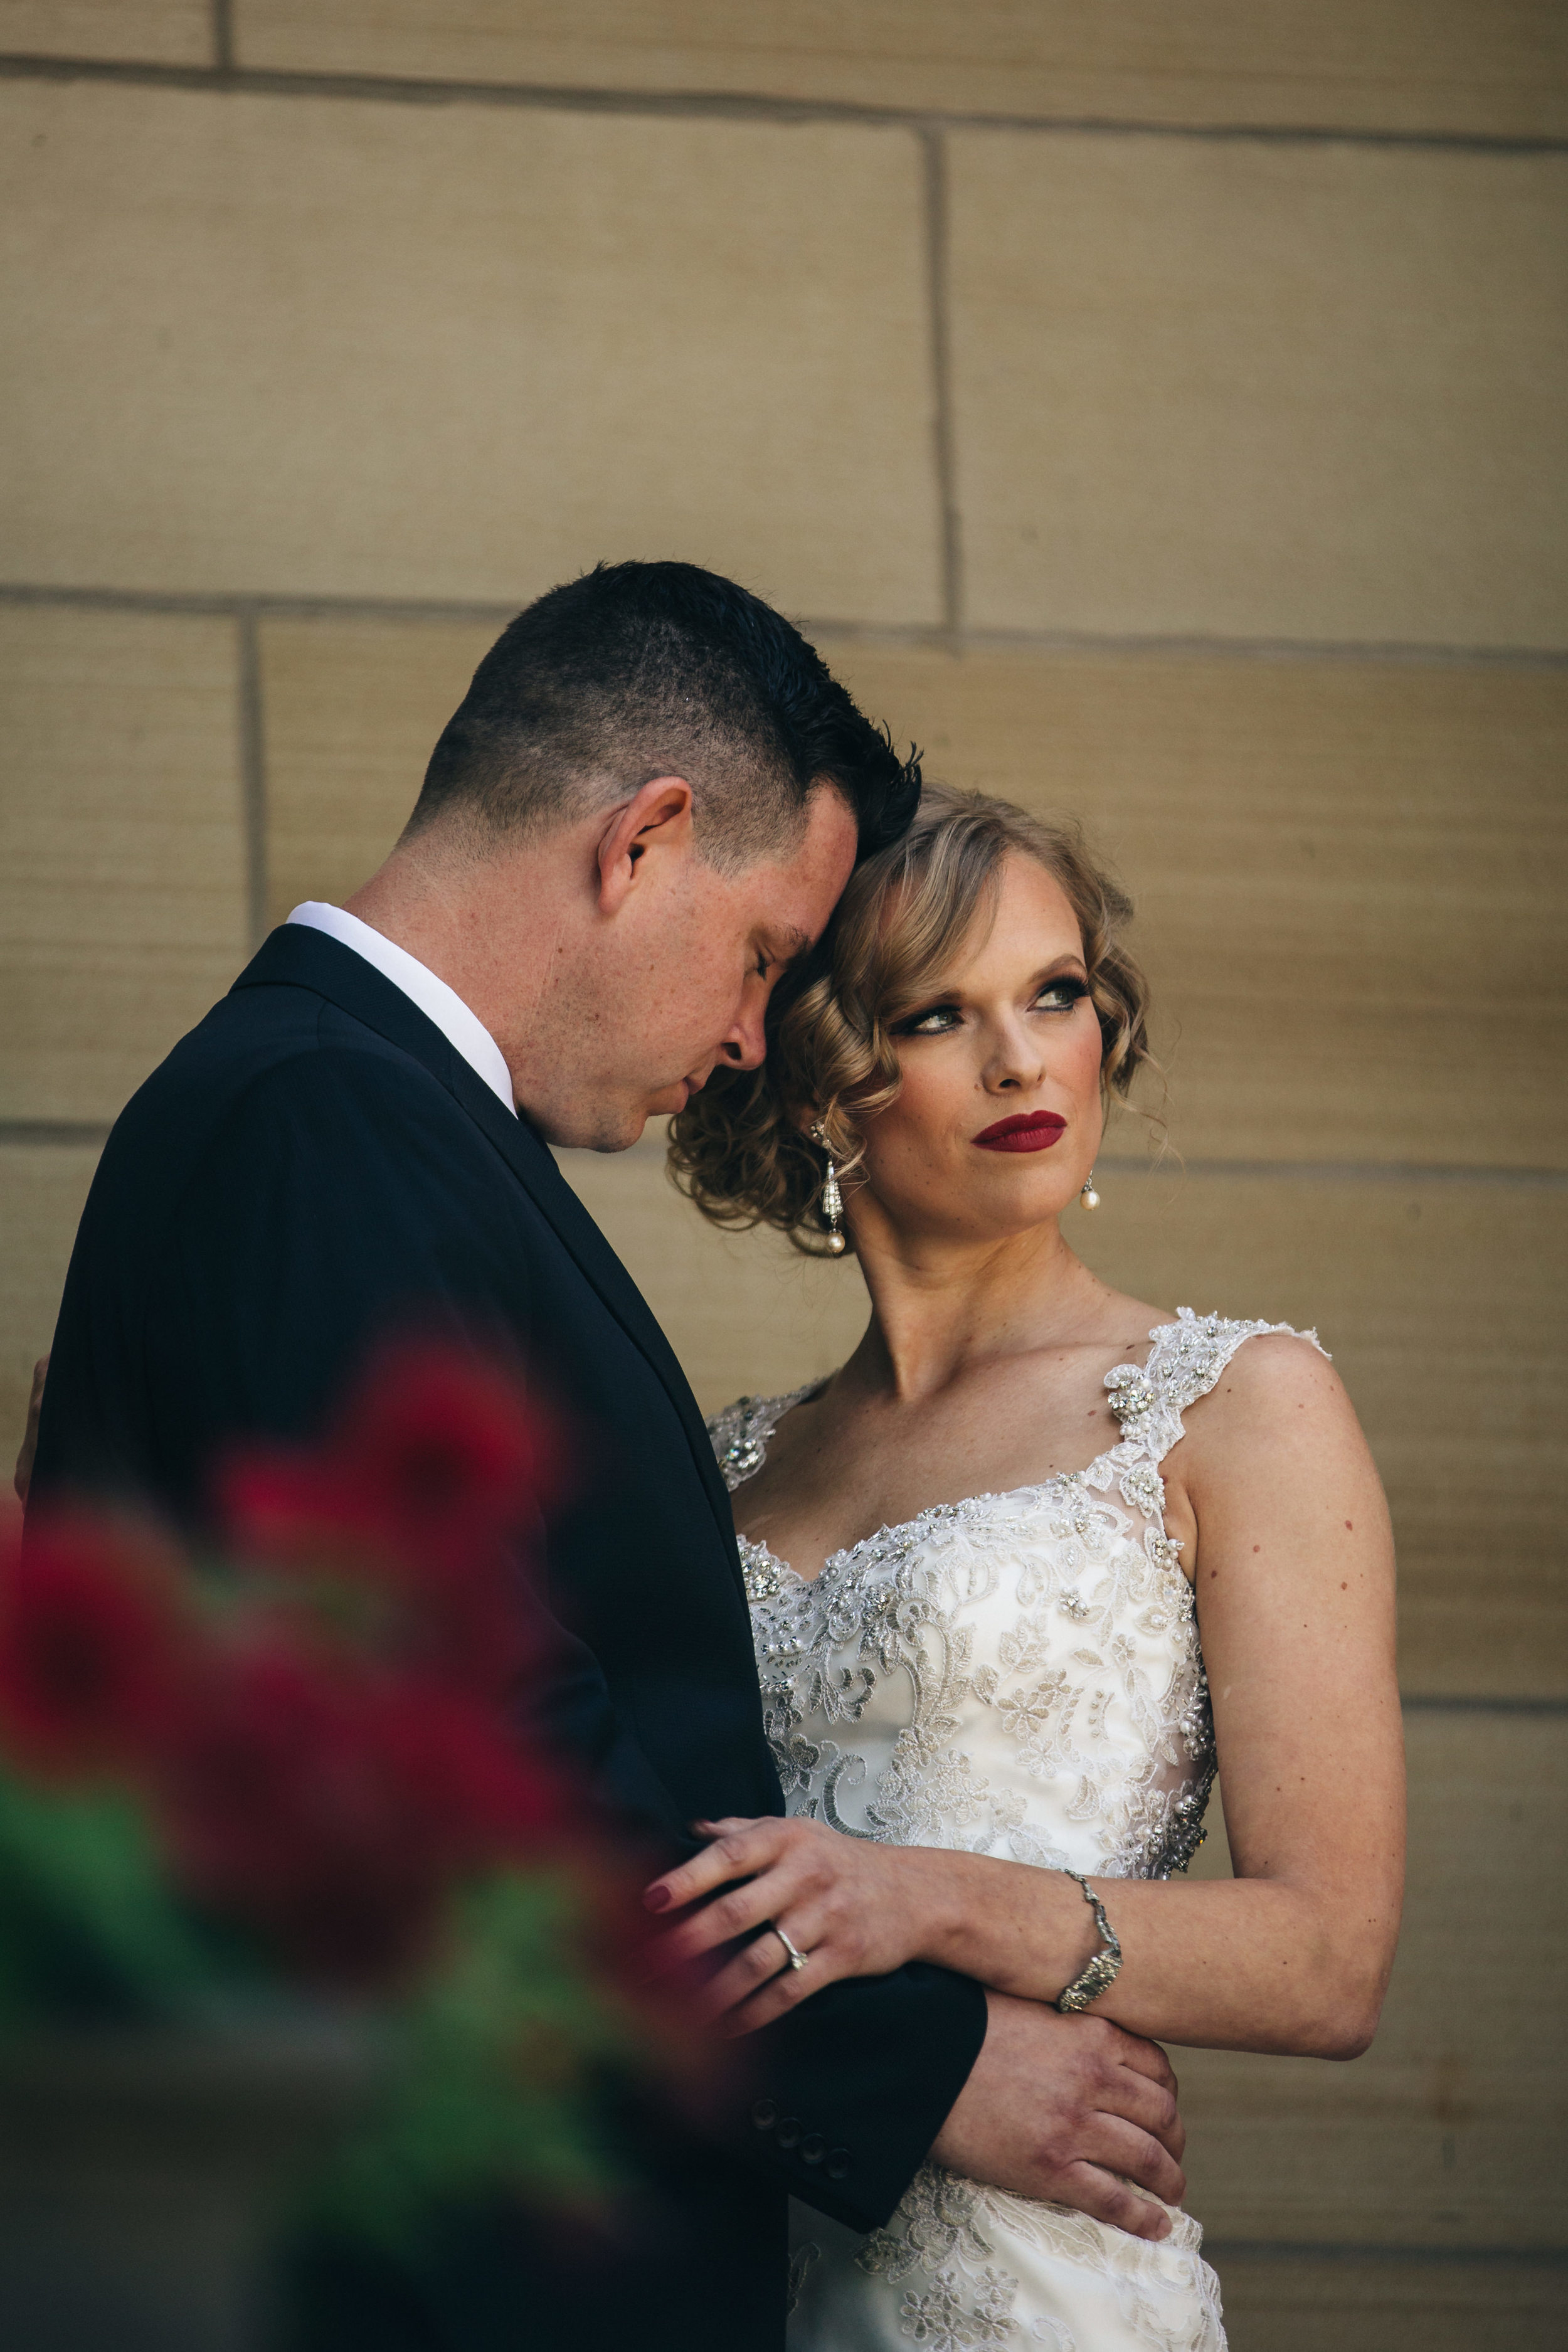 Beautiful bride in red lipstick with new groom.